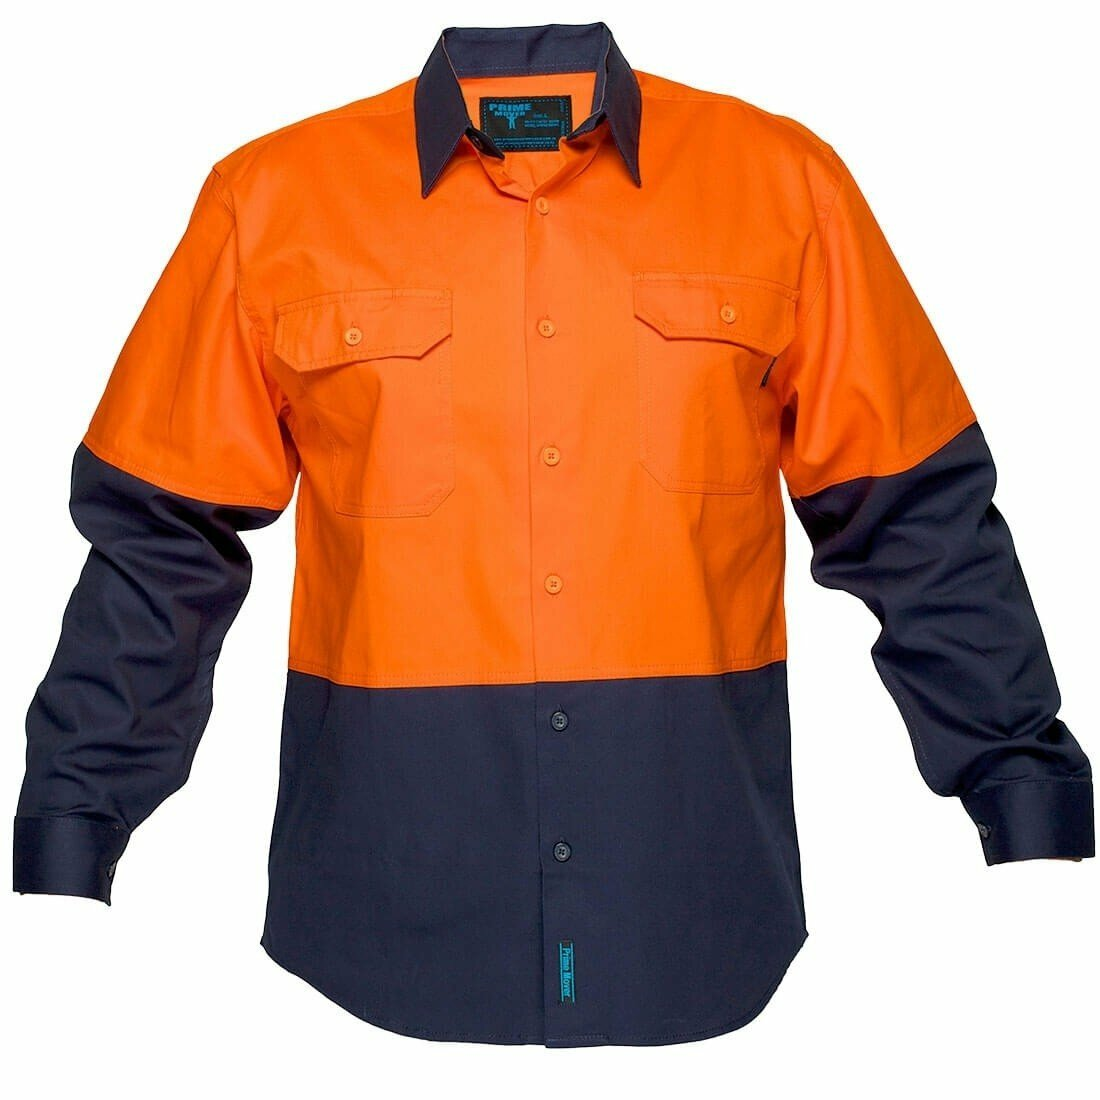 MS901 Hi-Vis Two Tone Regular Weight Long Sleeve Shirt